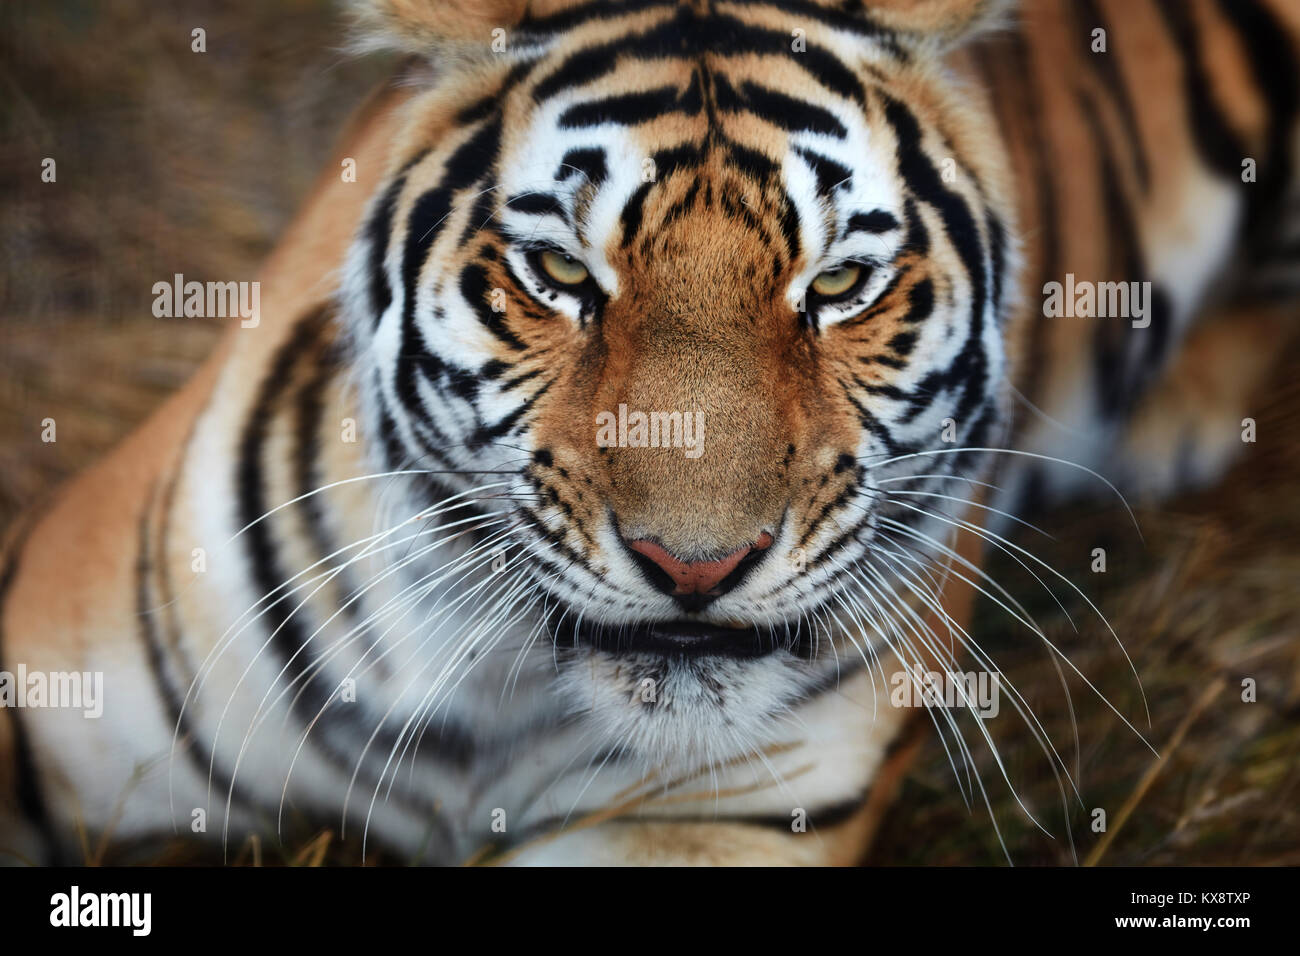 Tiger, portrait of a tiger - Stock Image